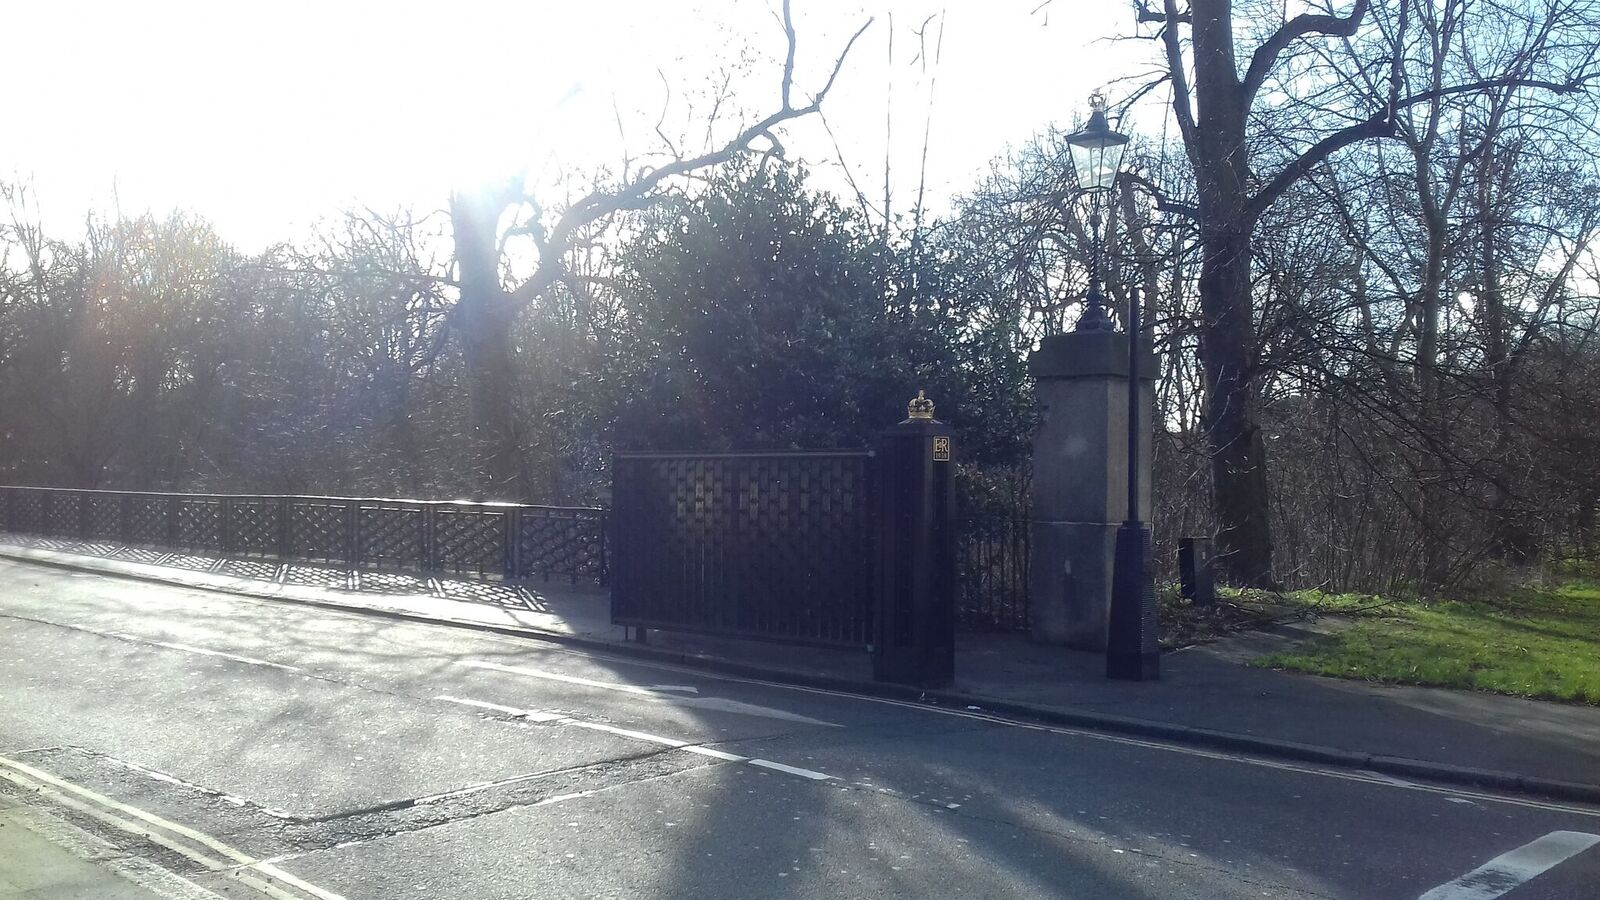 MACCLESFIELD BRIDGE ENTRANCE TO REGENTS PARK